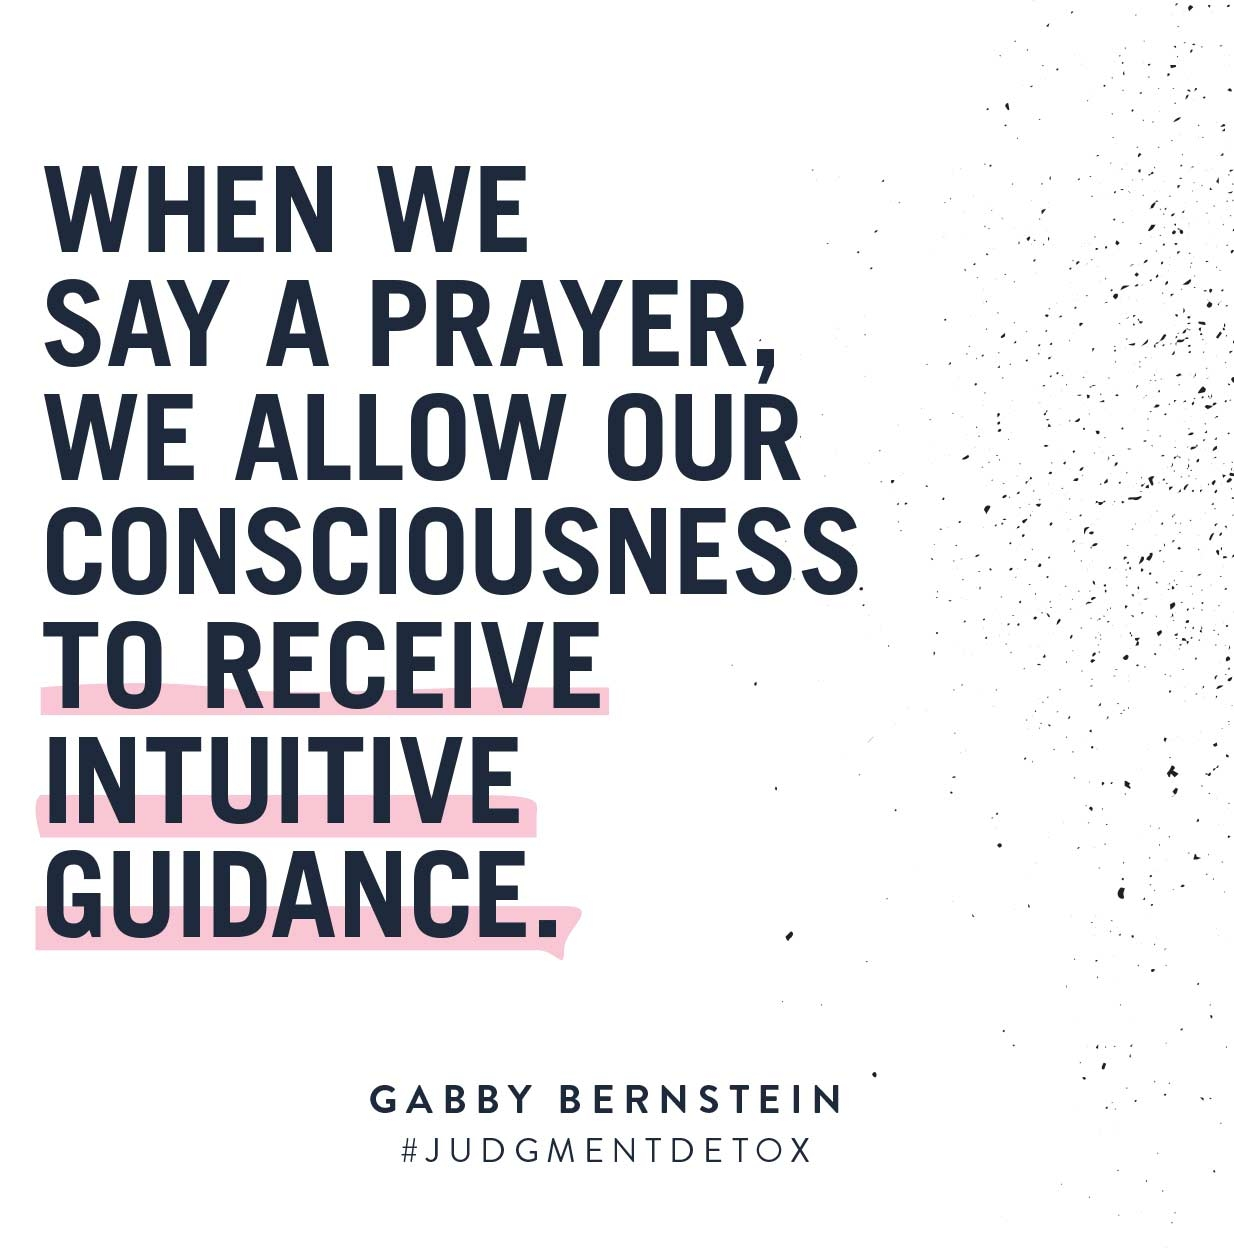 When we say a prayer, we allow our consciousness to receive intuitive guidance. | Judgment Detox by Gabby Bernstein